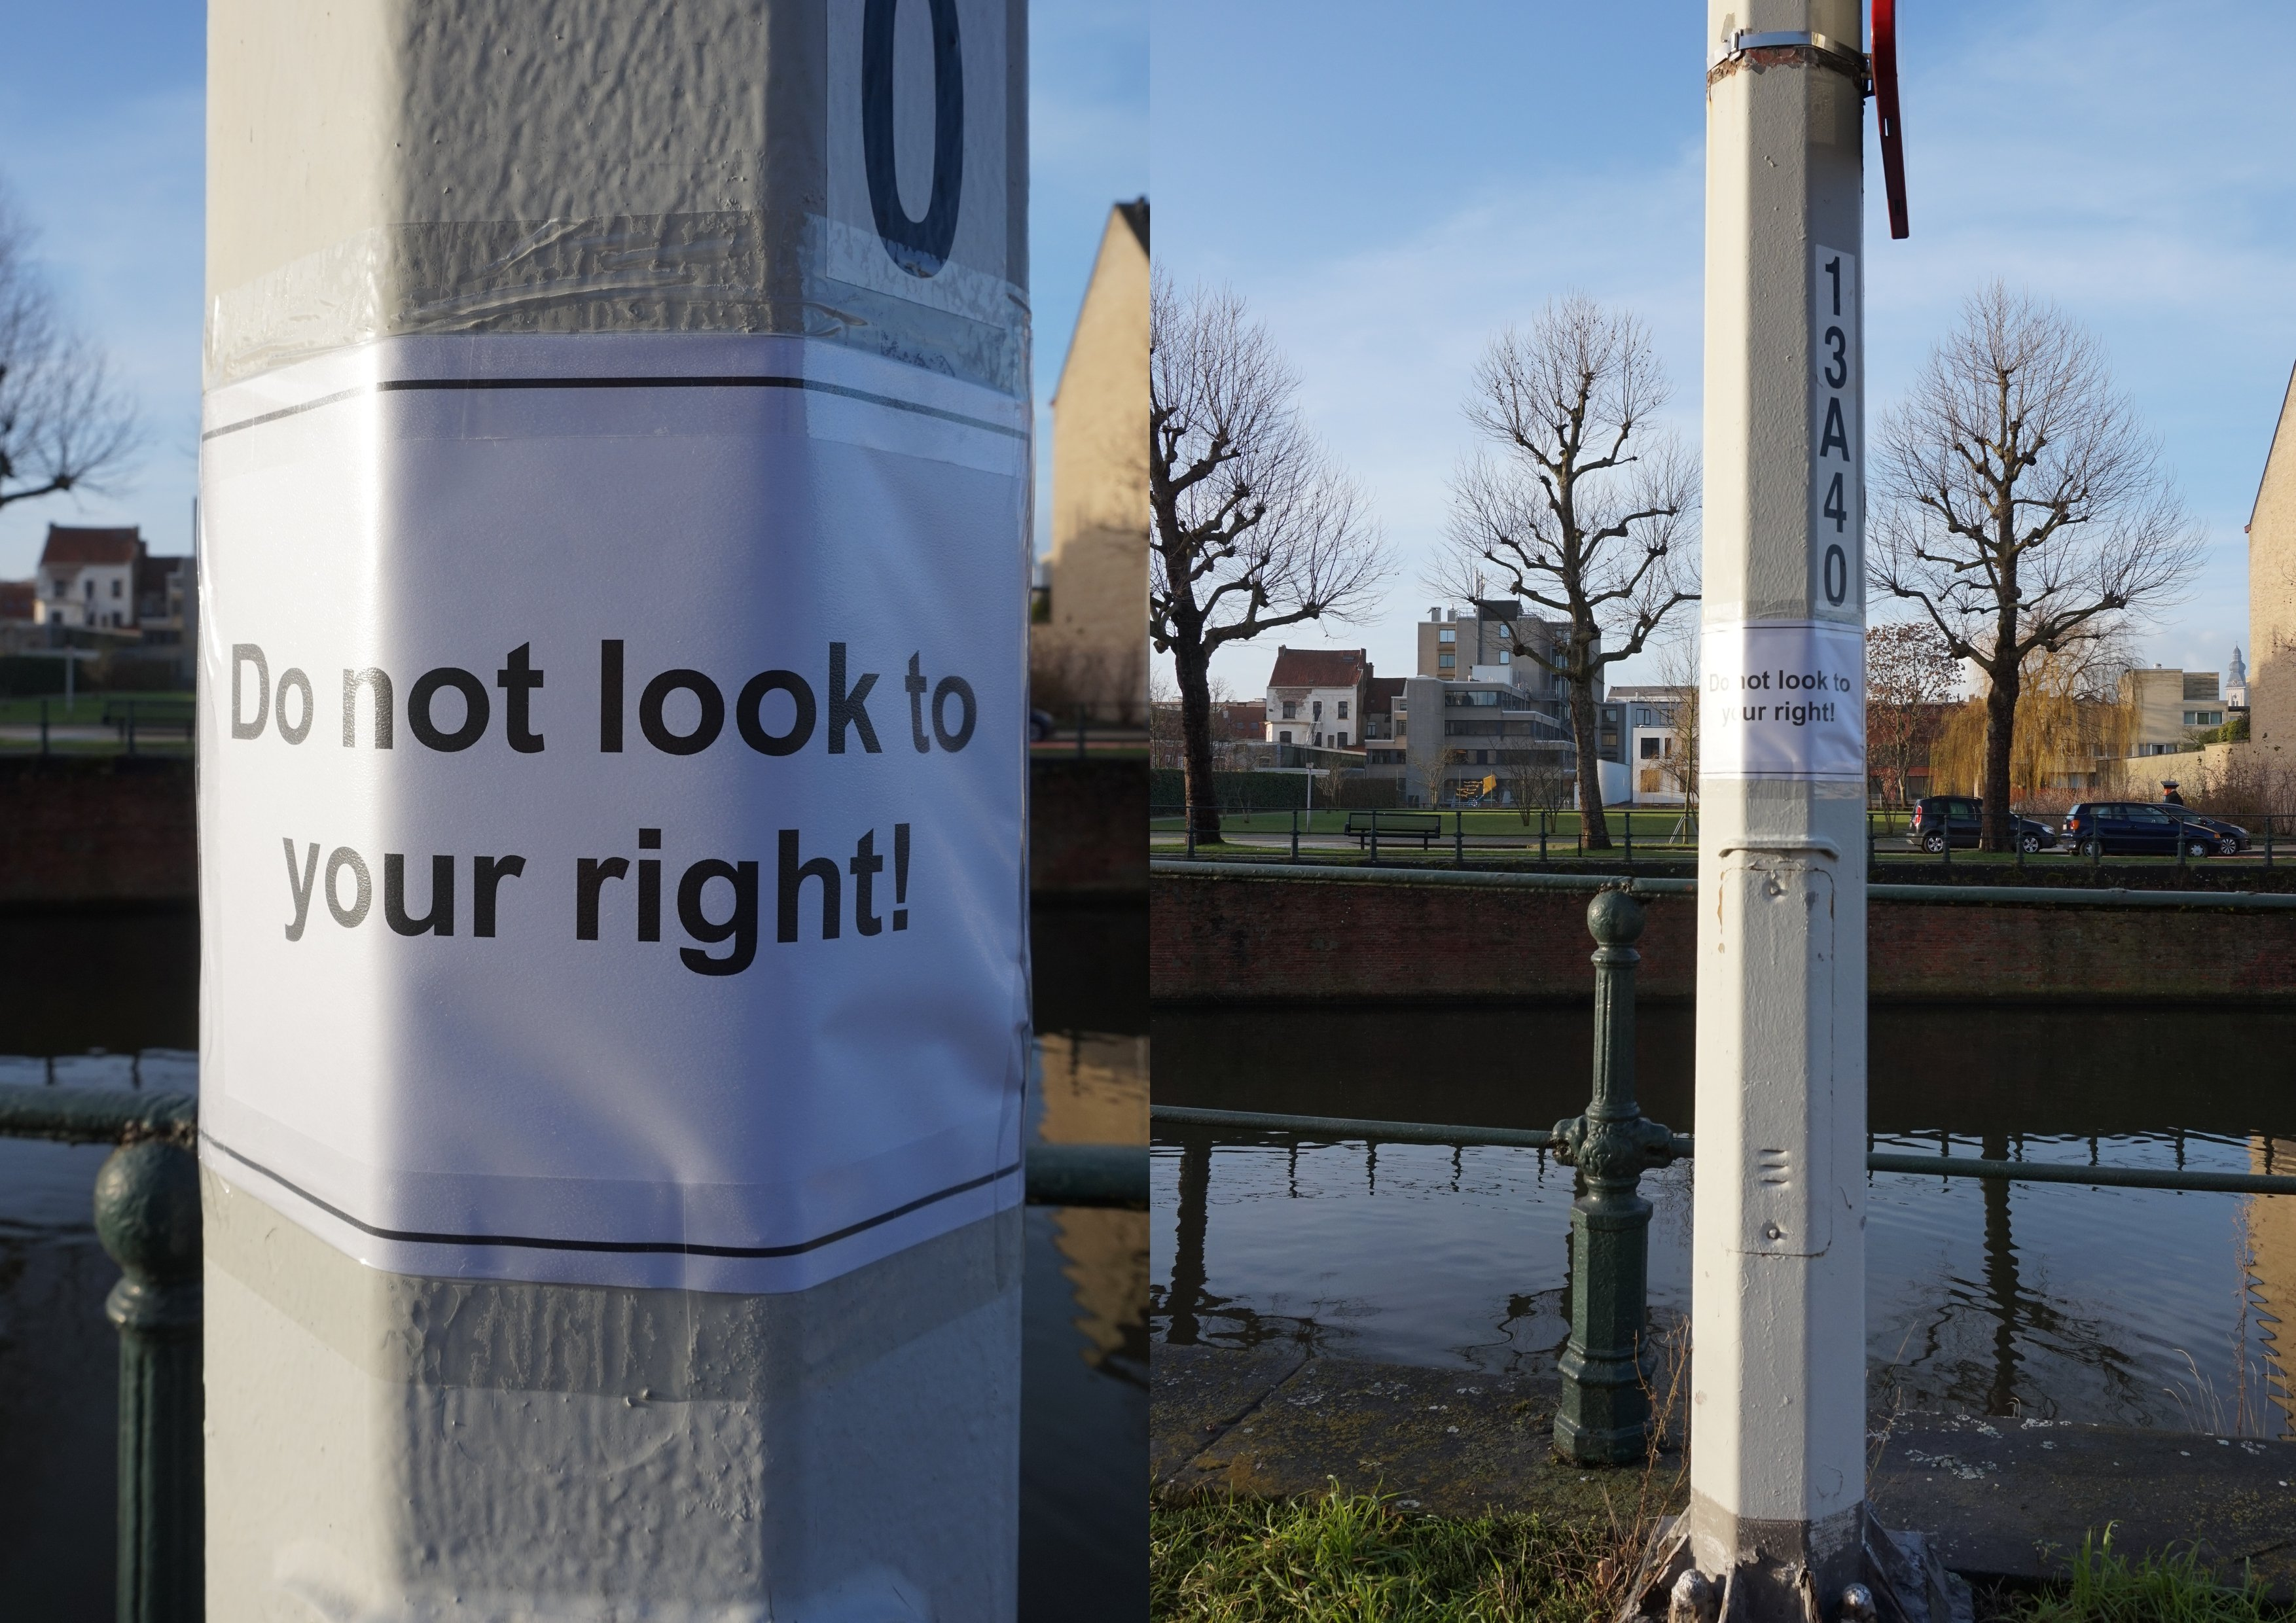 Do not look to your right!